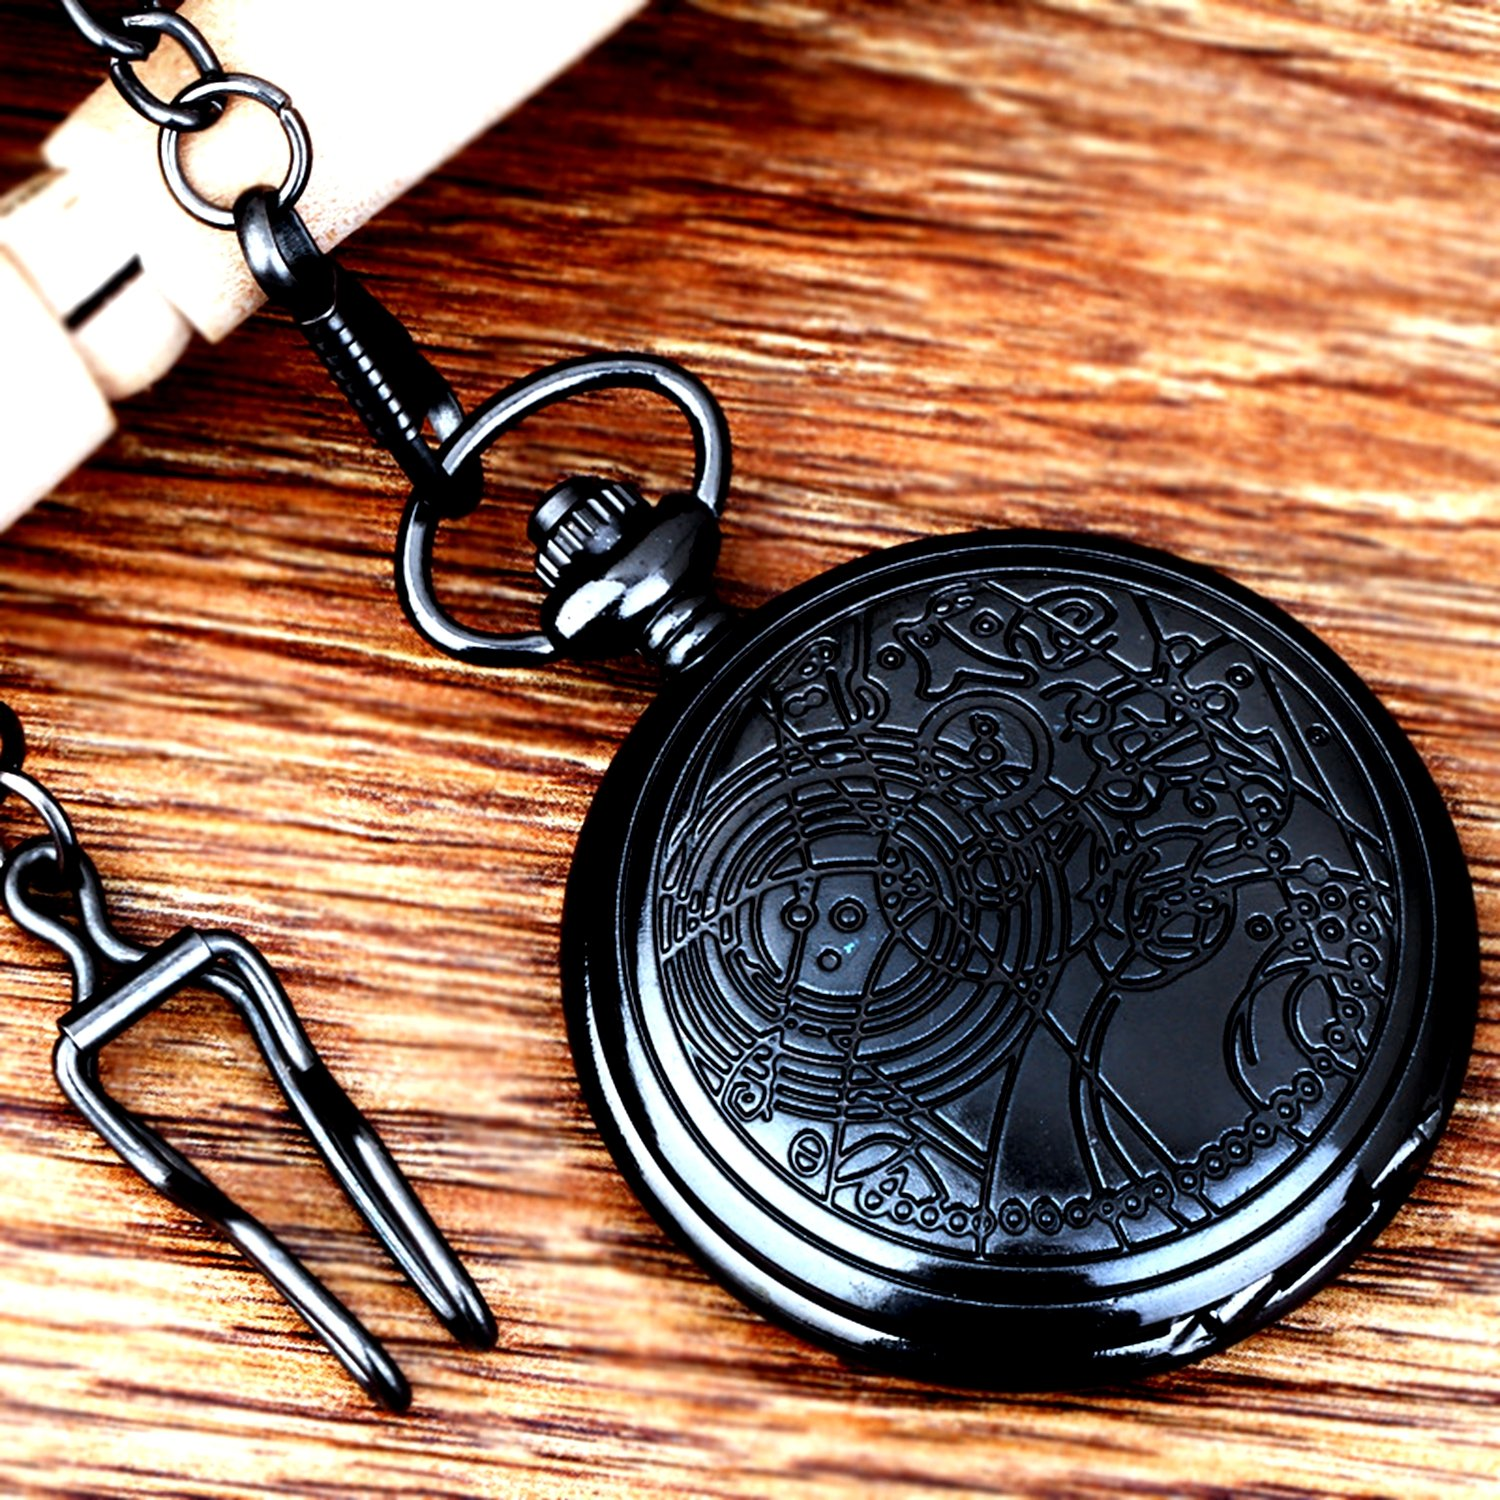 Vintage Black Doctor Who Retro Dr. Who Quartz Pocket Watch with Chain & Gift Box by New Brand Mall (Image #5)